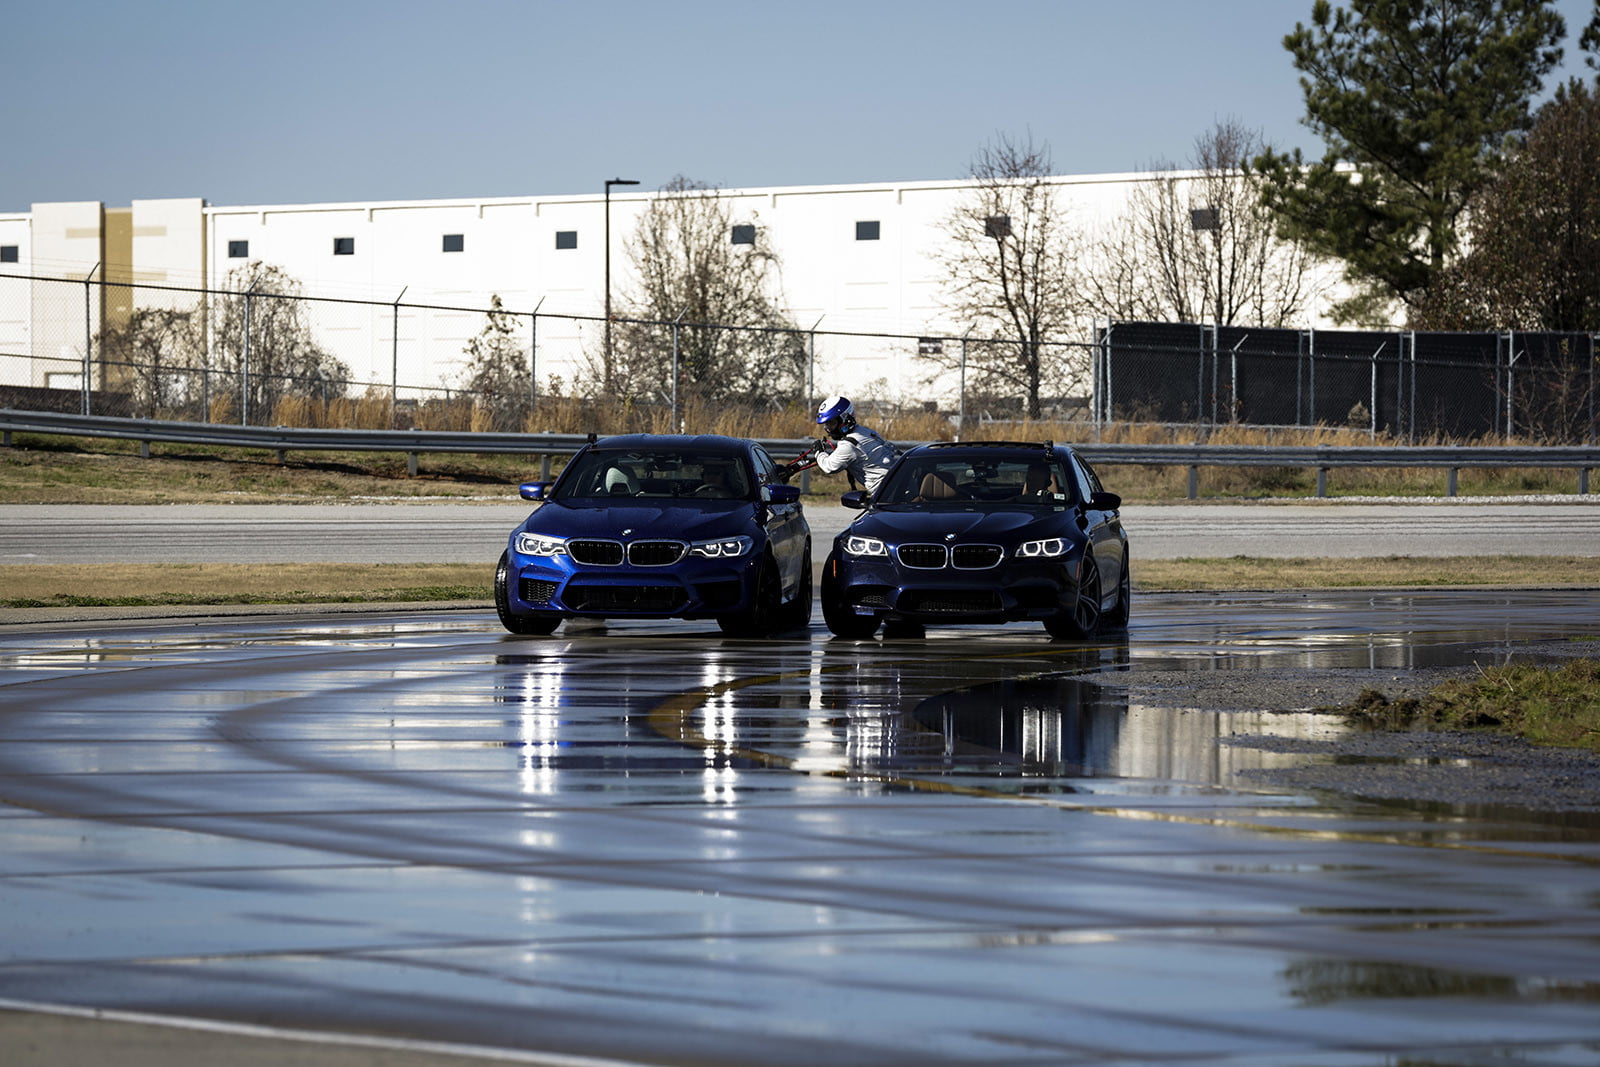 BMW sets two Guinness World Records, drifting sideways for 232.5 miles